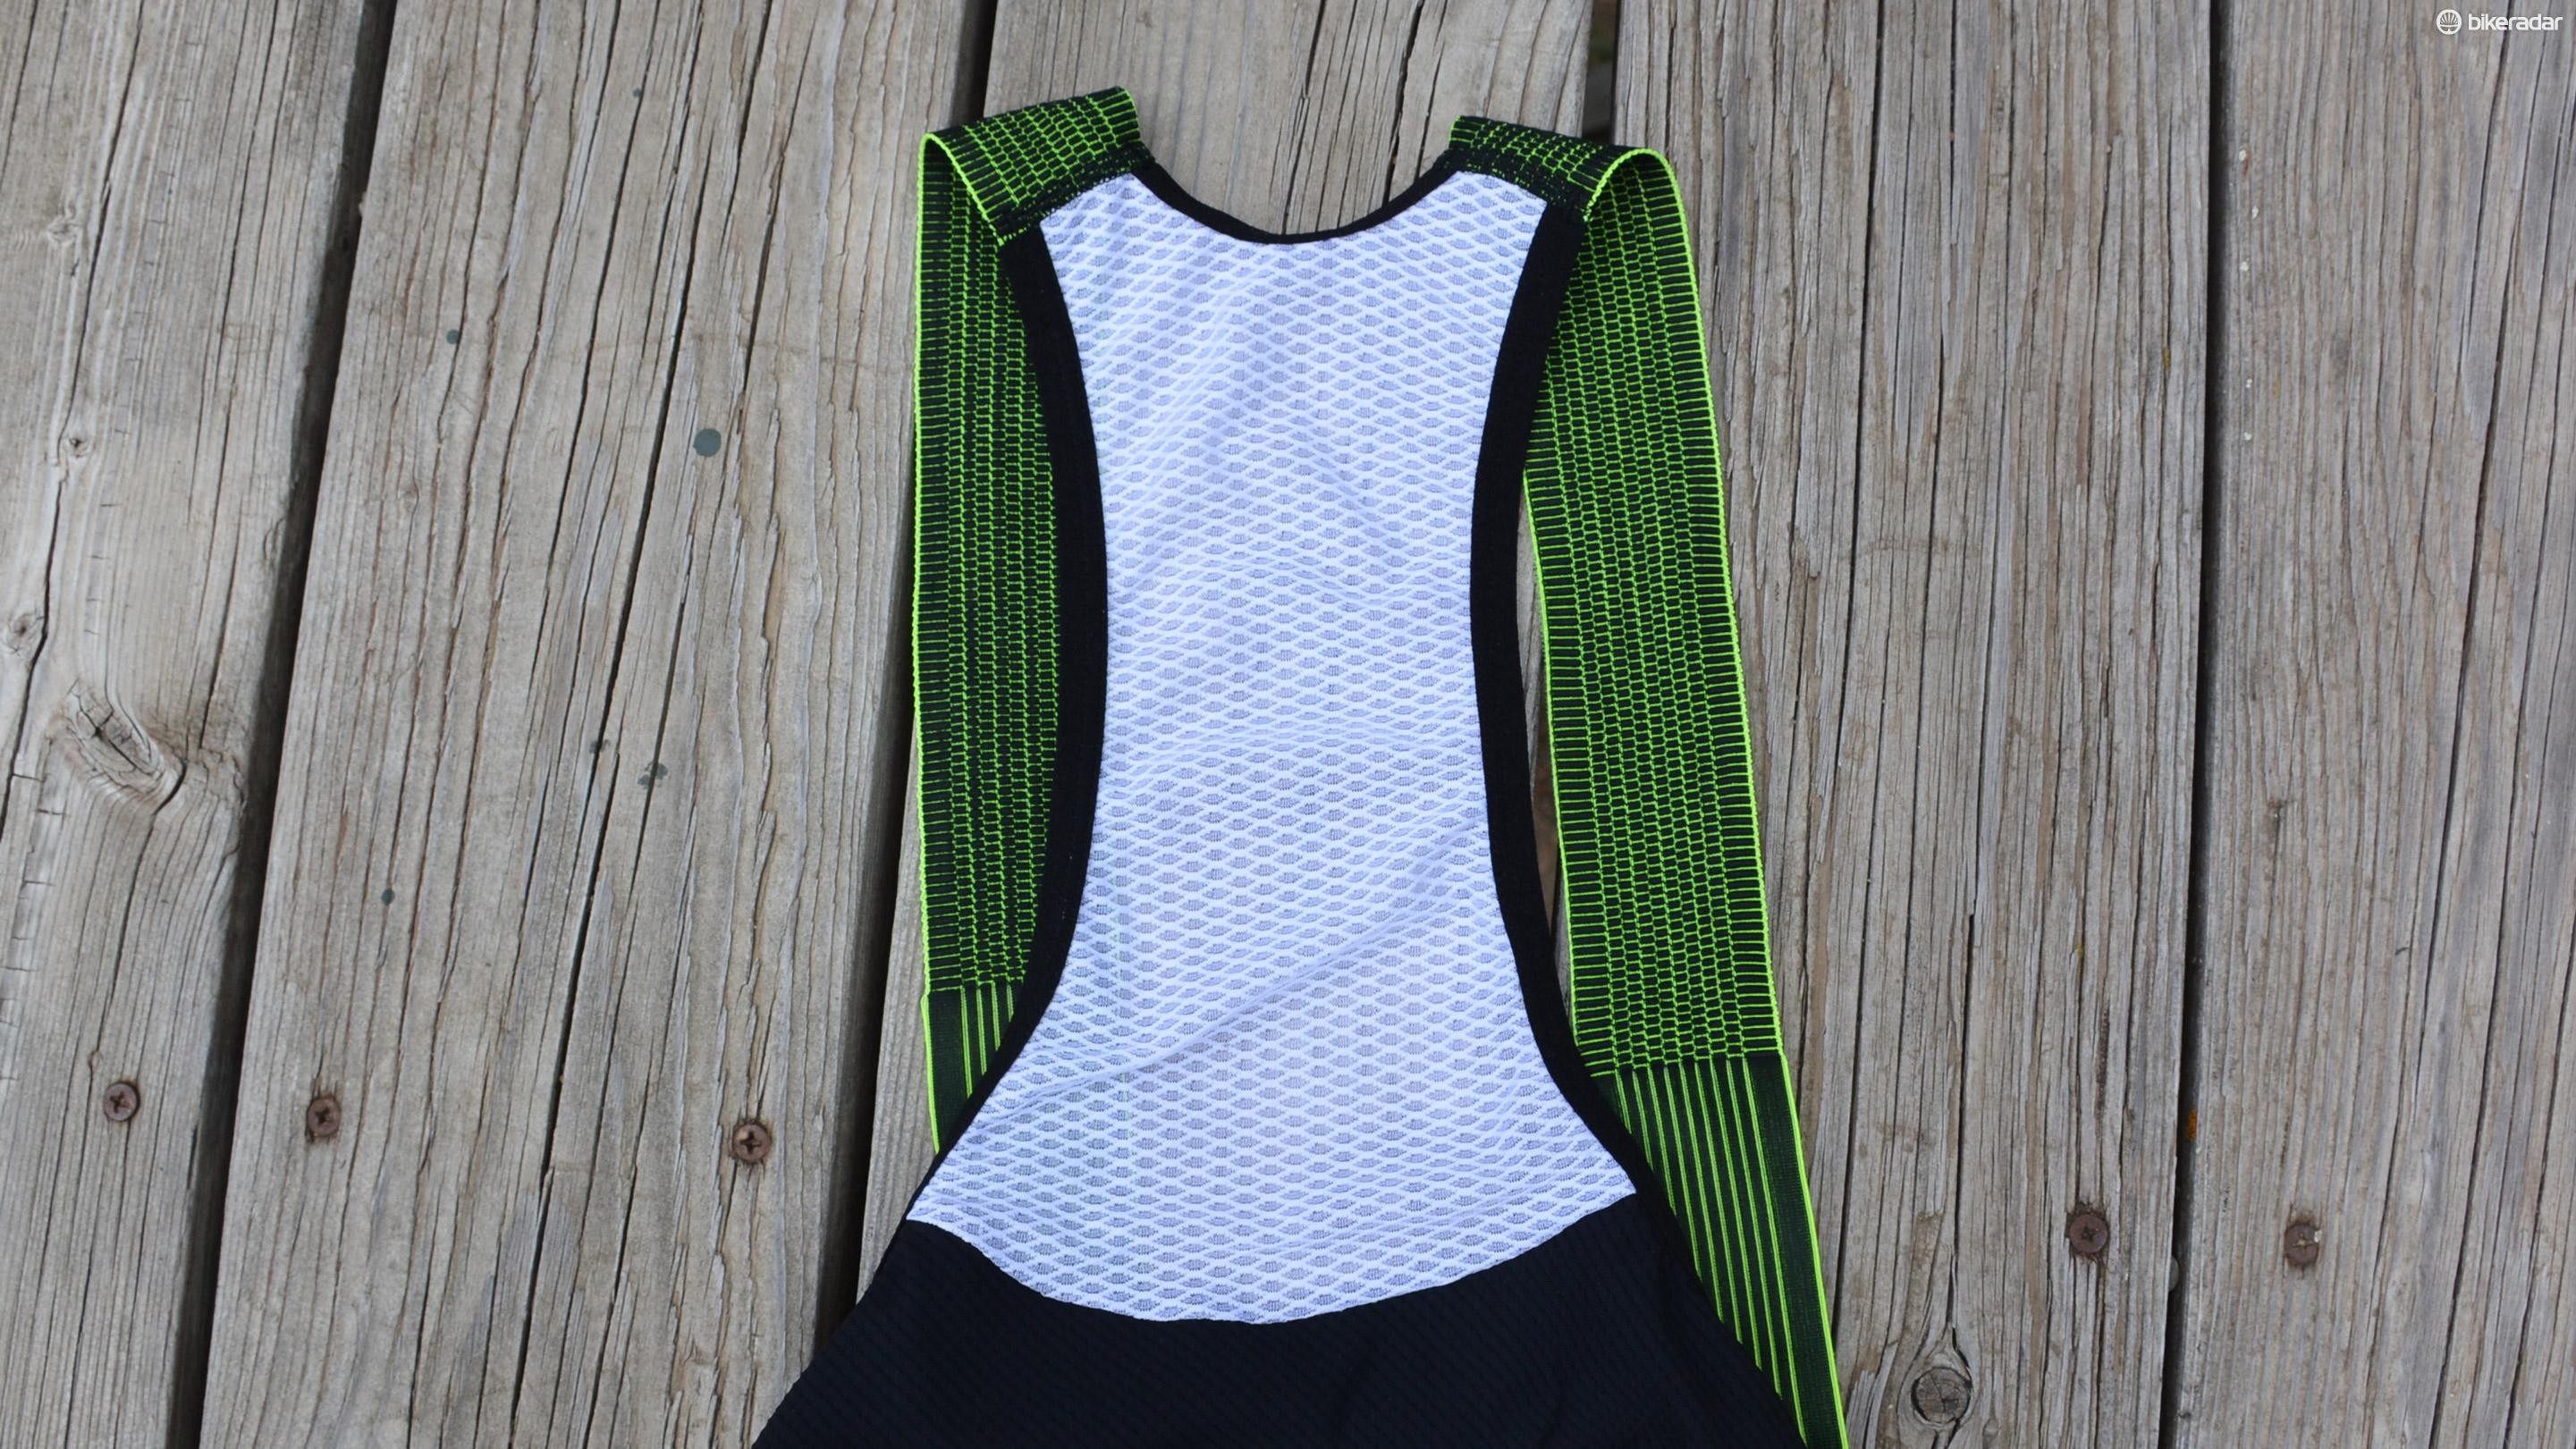 The upper back is a very breathable mesh